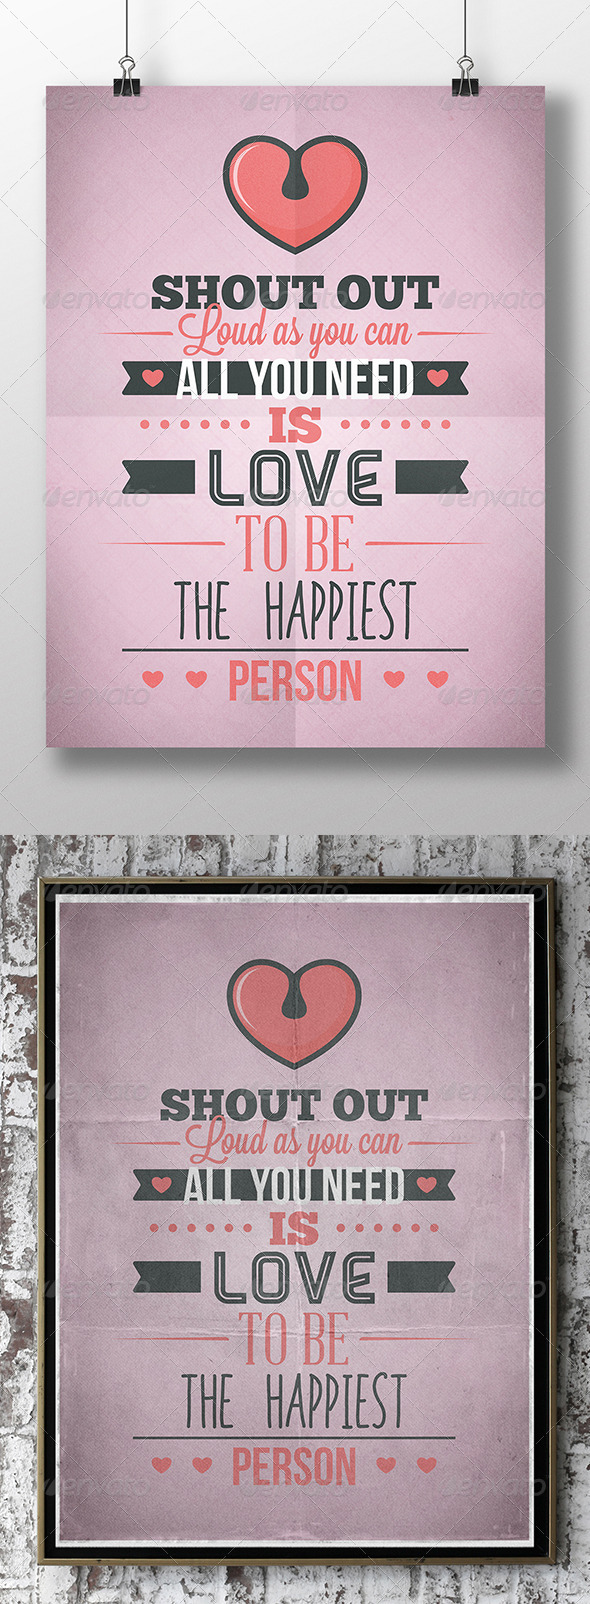 GraphicRiver Love Flyer 8021501